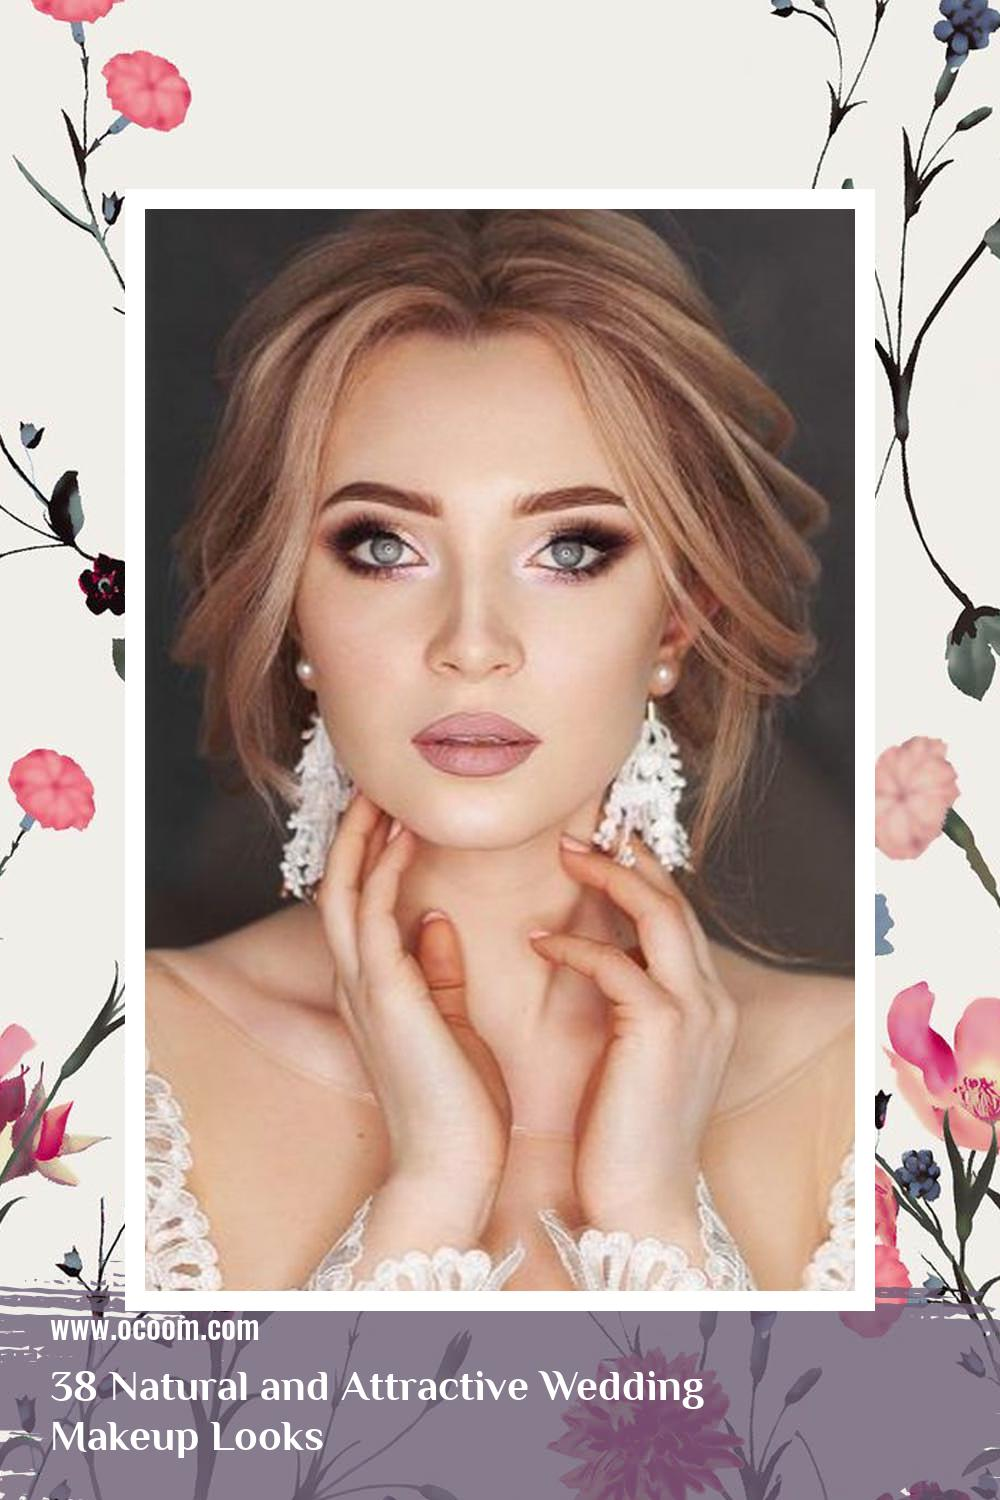 38 Natural and Attractive Wedding Makeup Looks 9